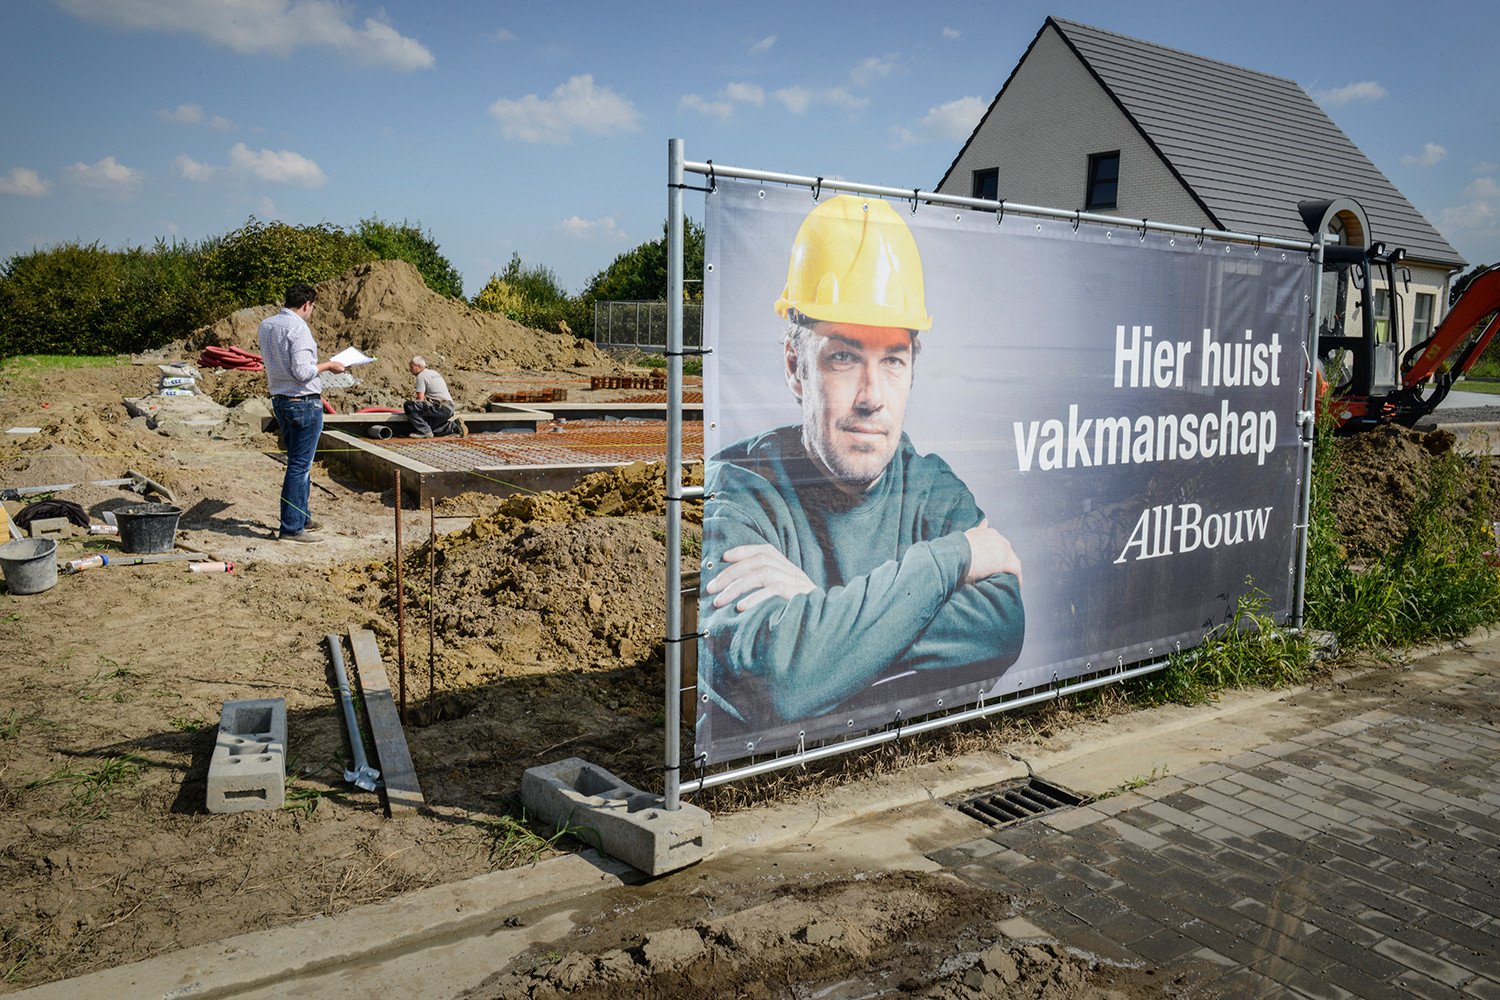 All-bouw is een erkend aannemer